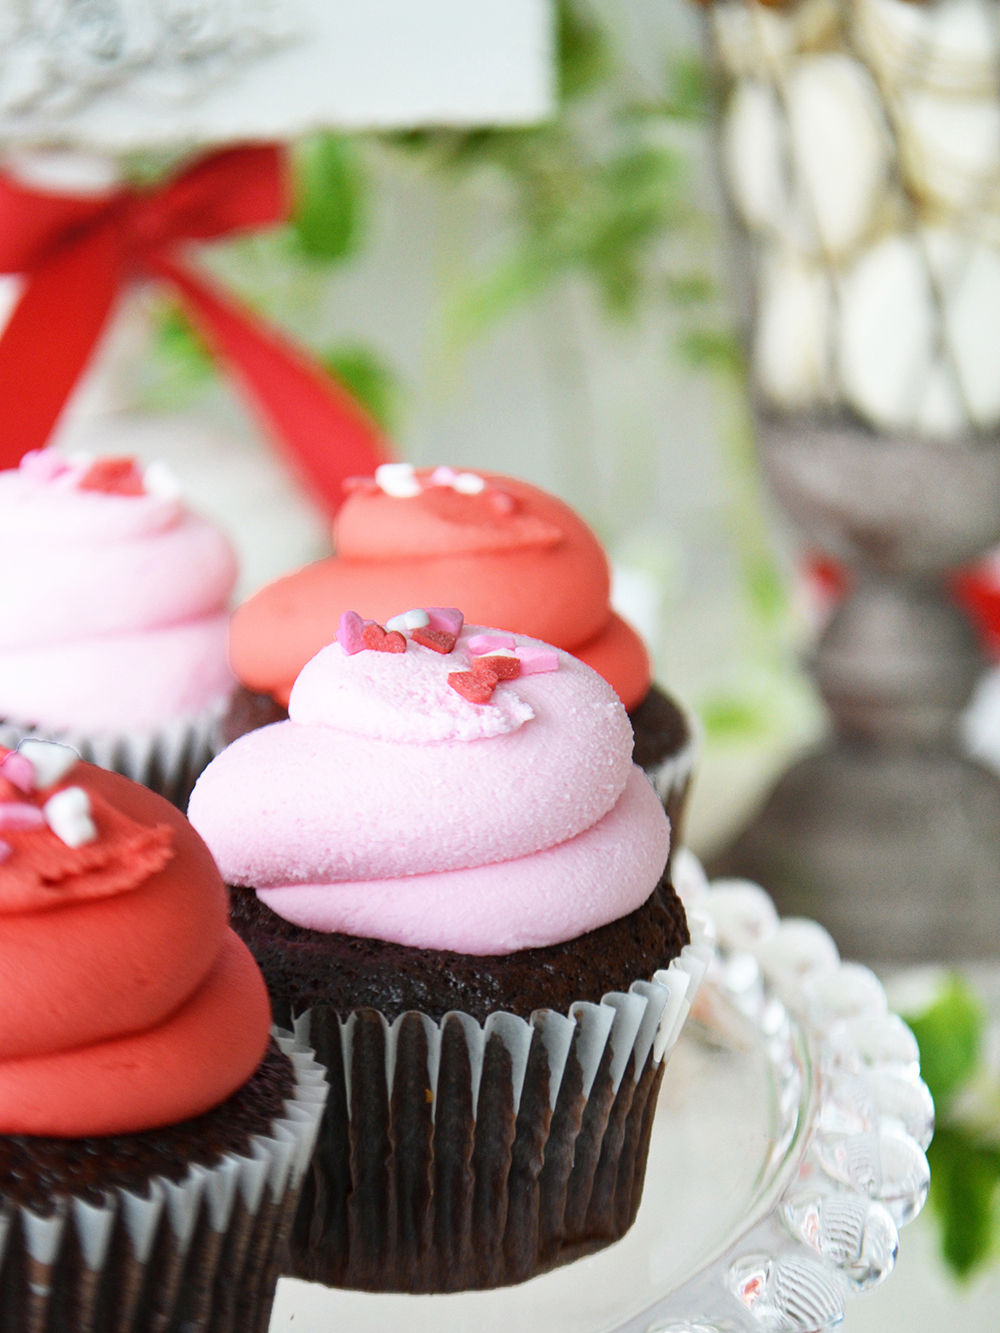 Valentine Cupcake with Heart Sprinkles - Lg $3.40, Mini $2.00